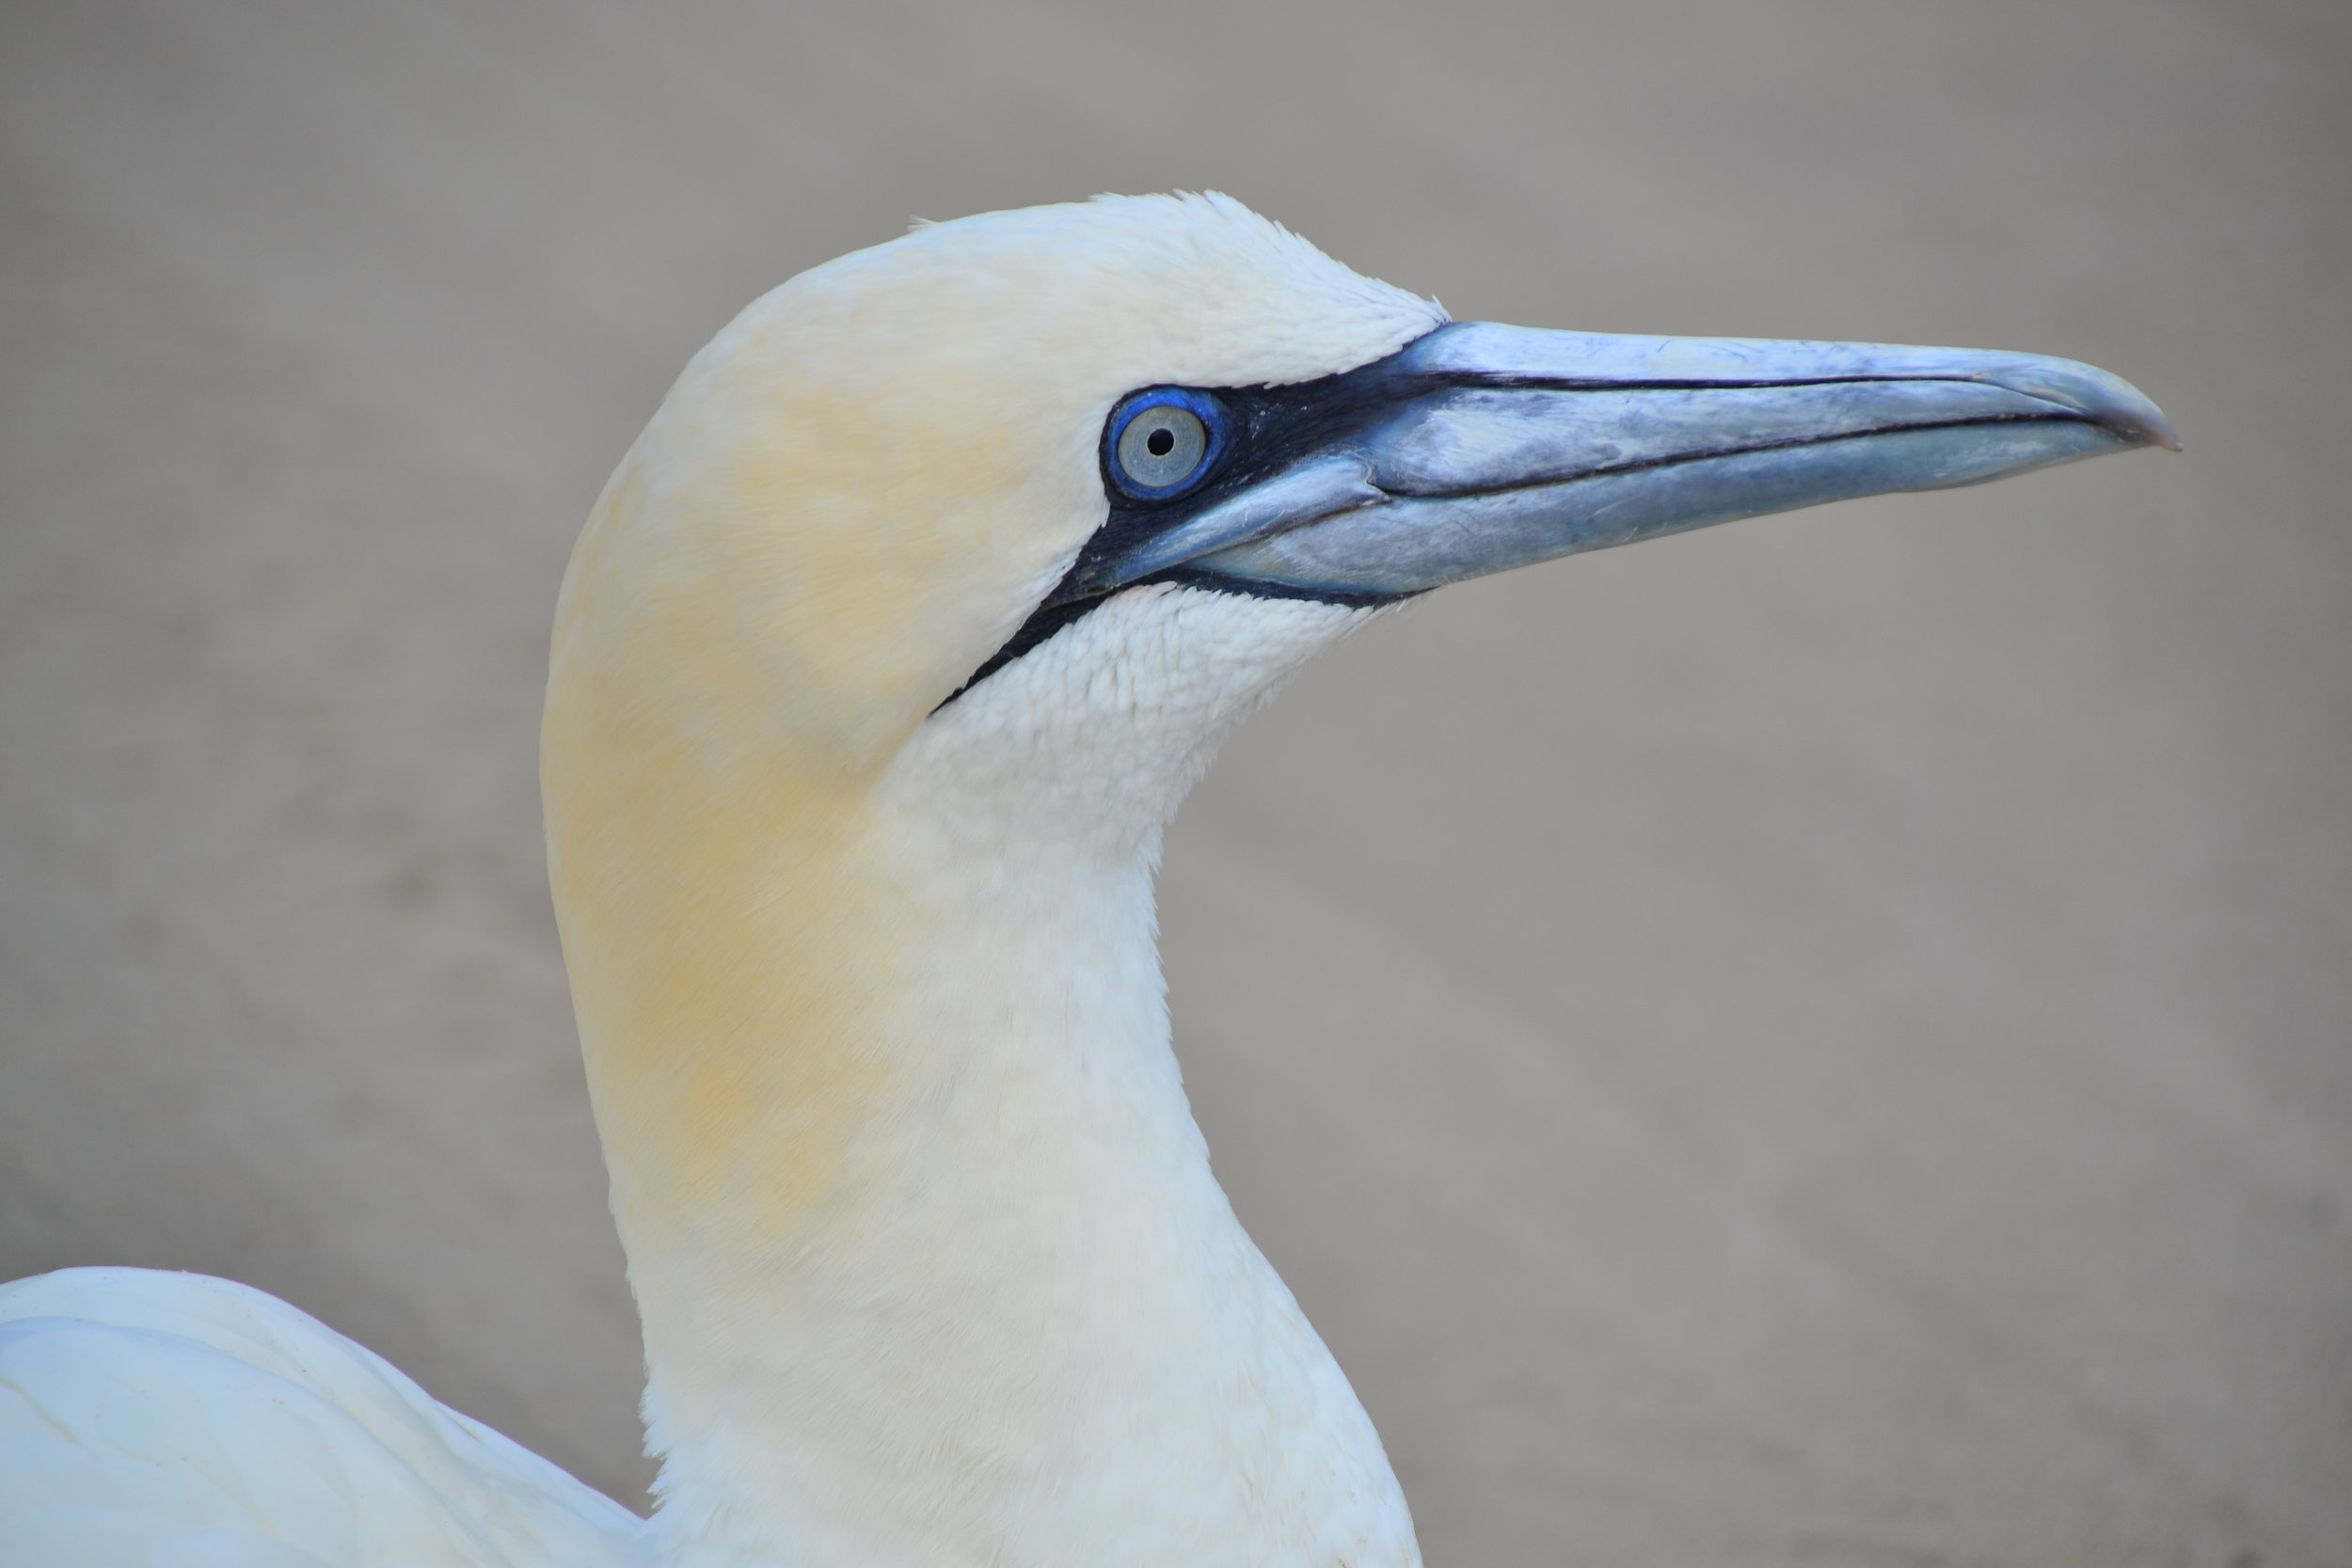 Northern Gannet, Adult.